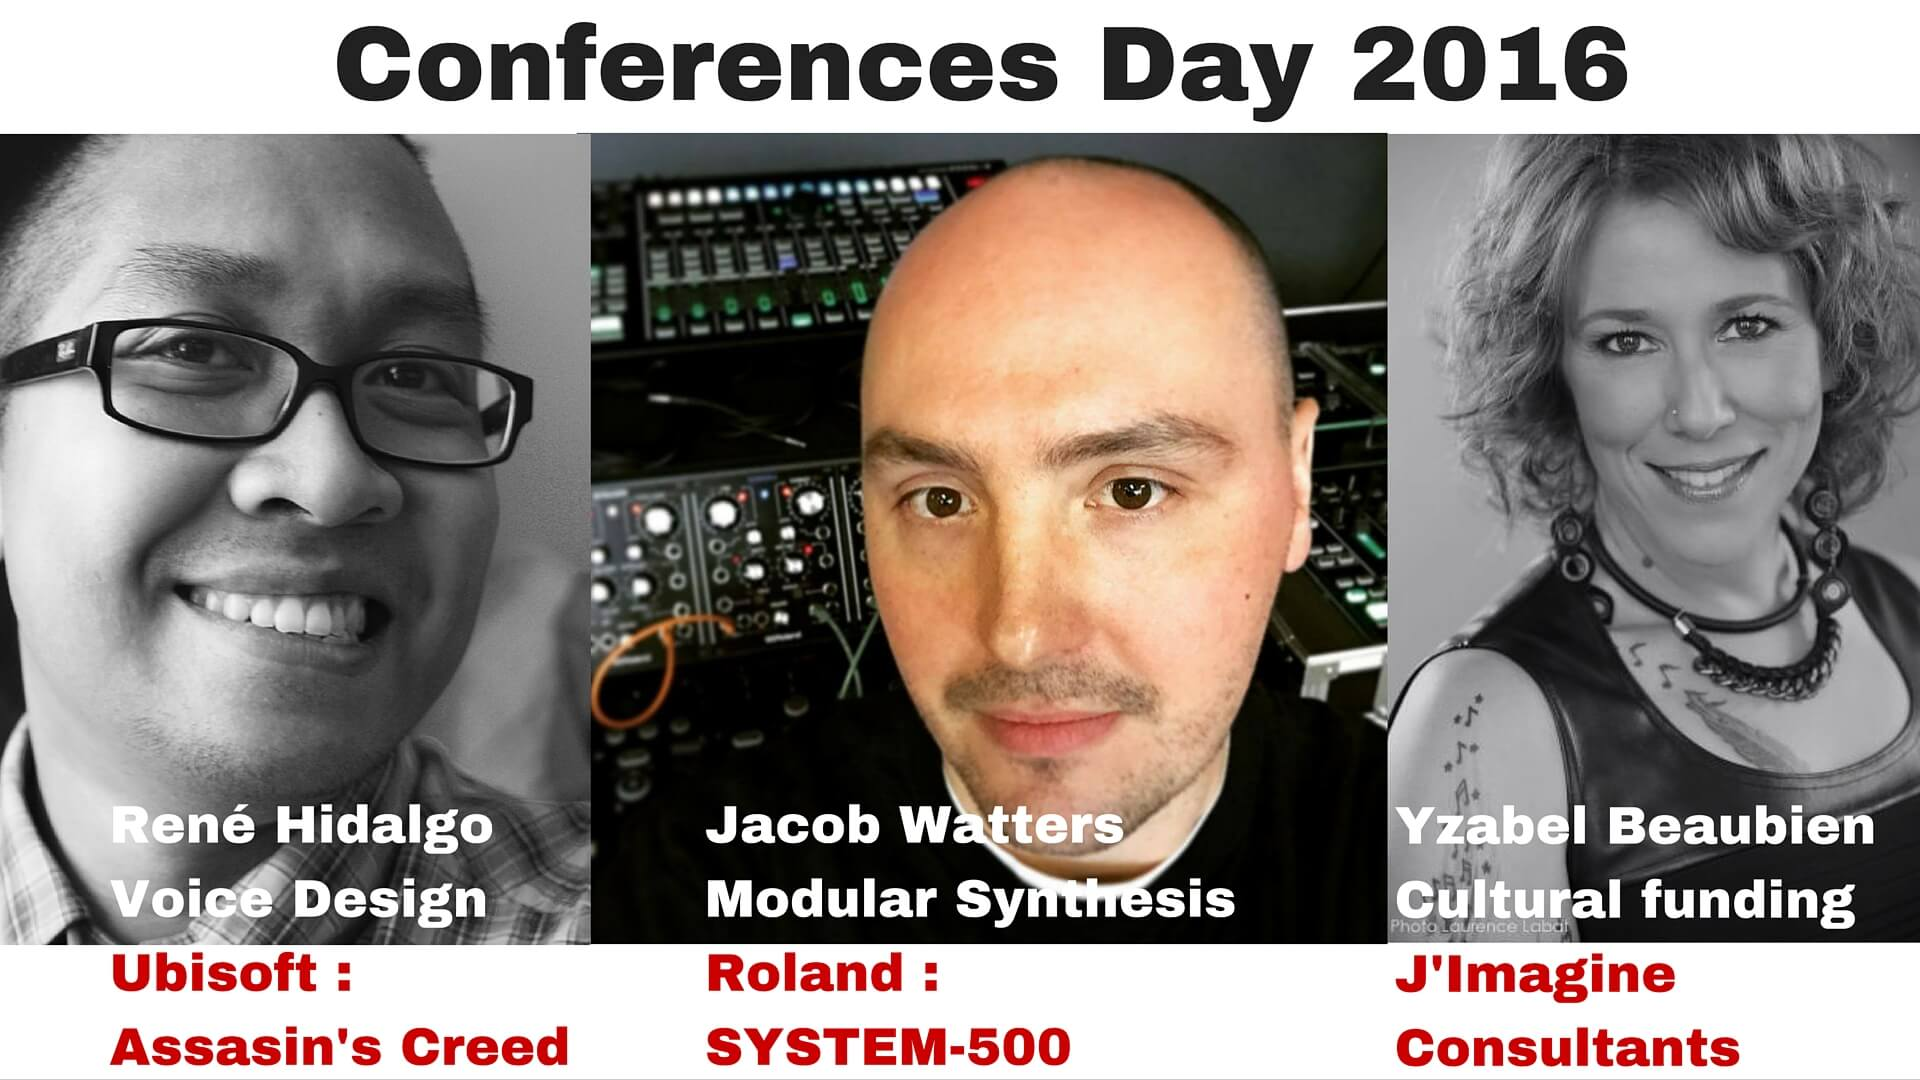 Conference Day 2016